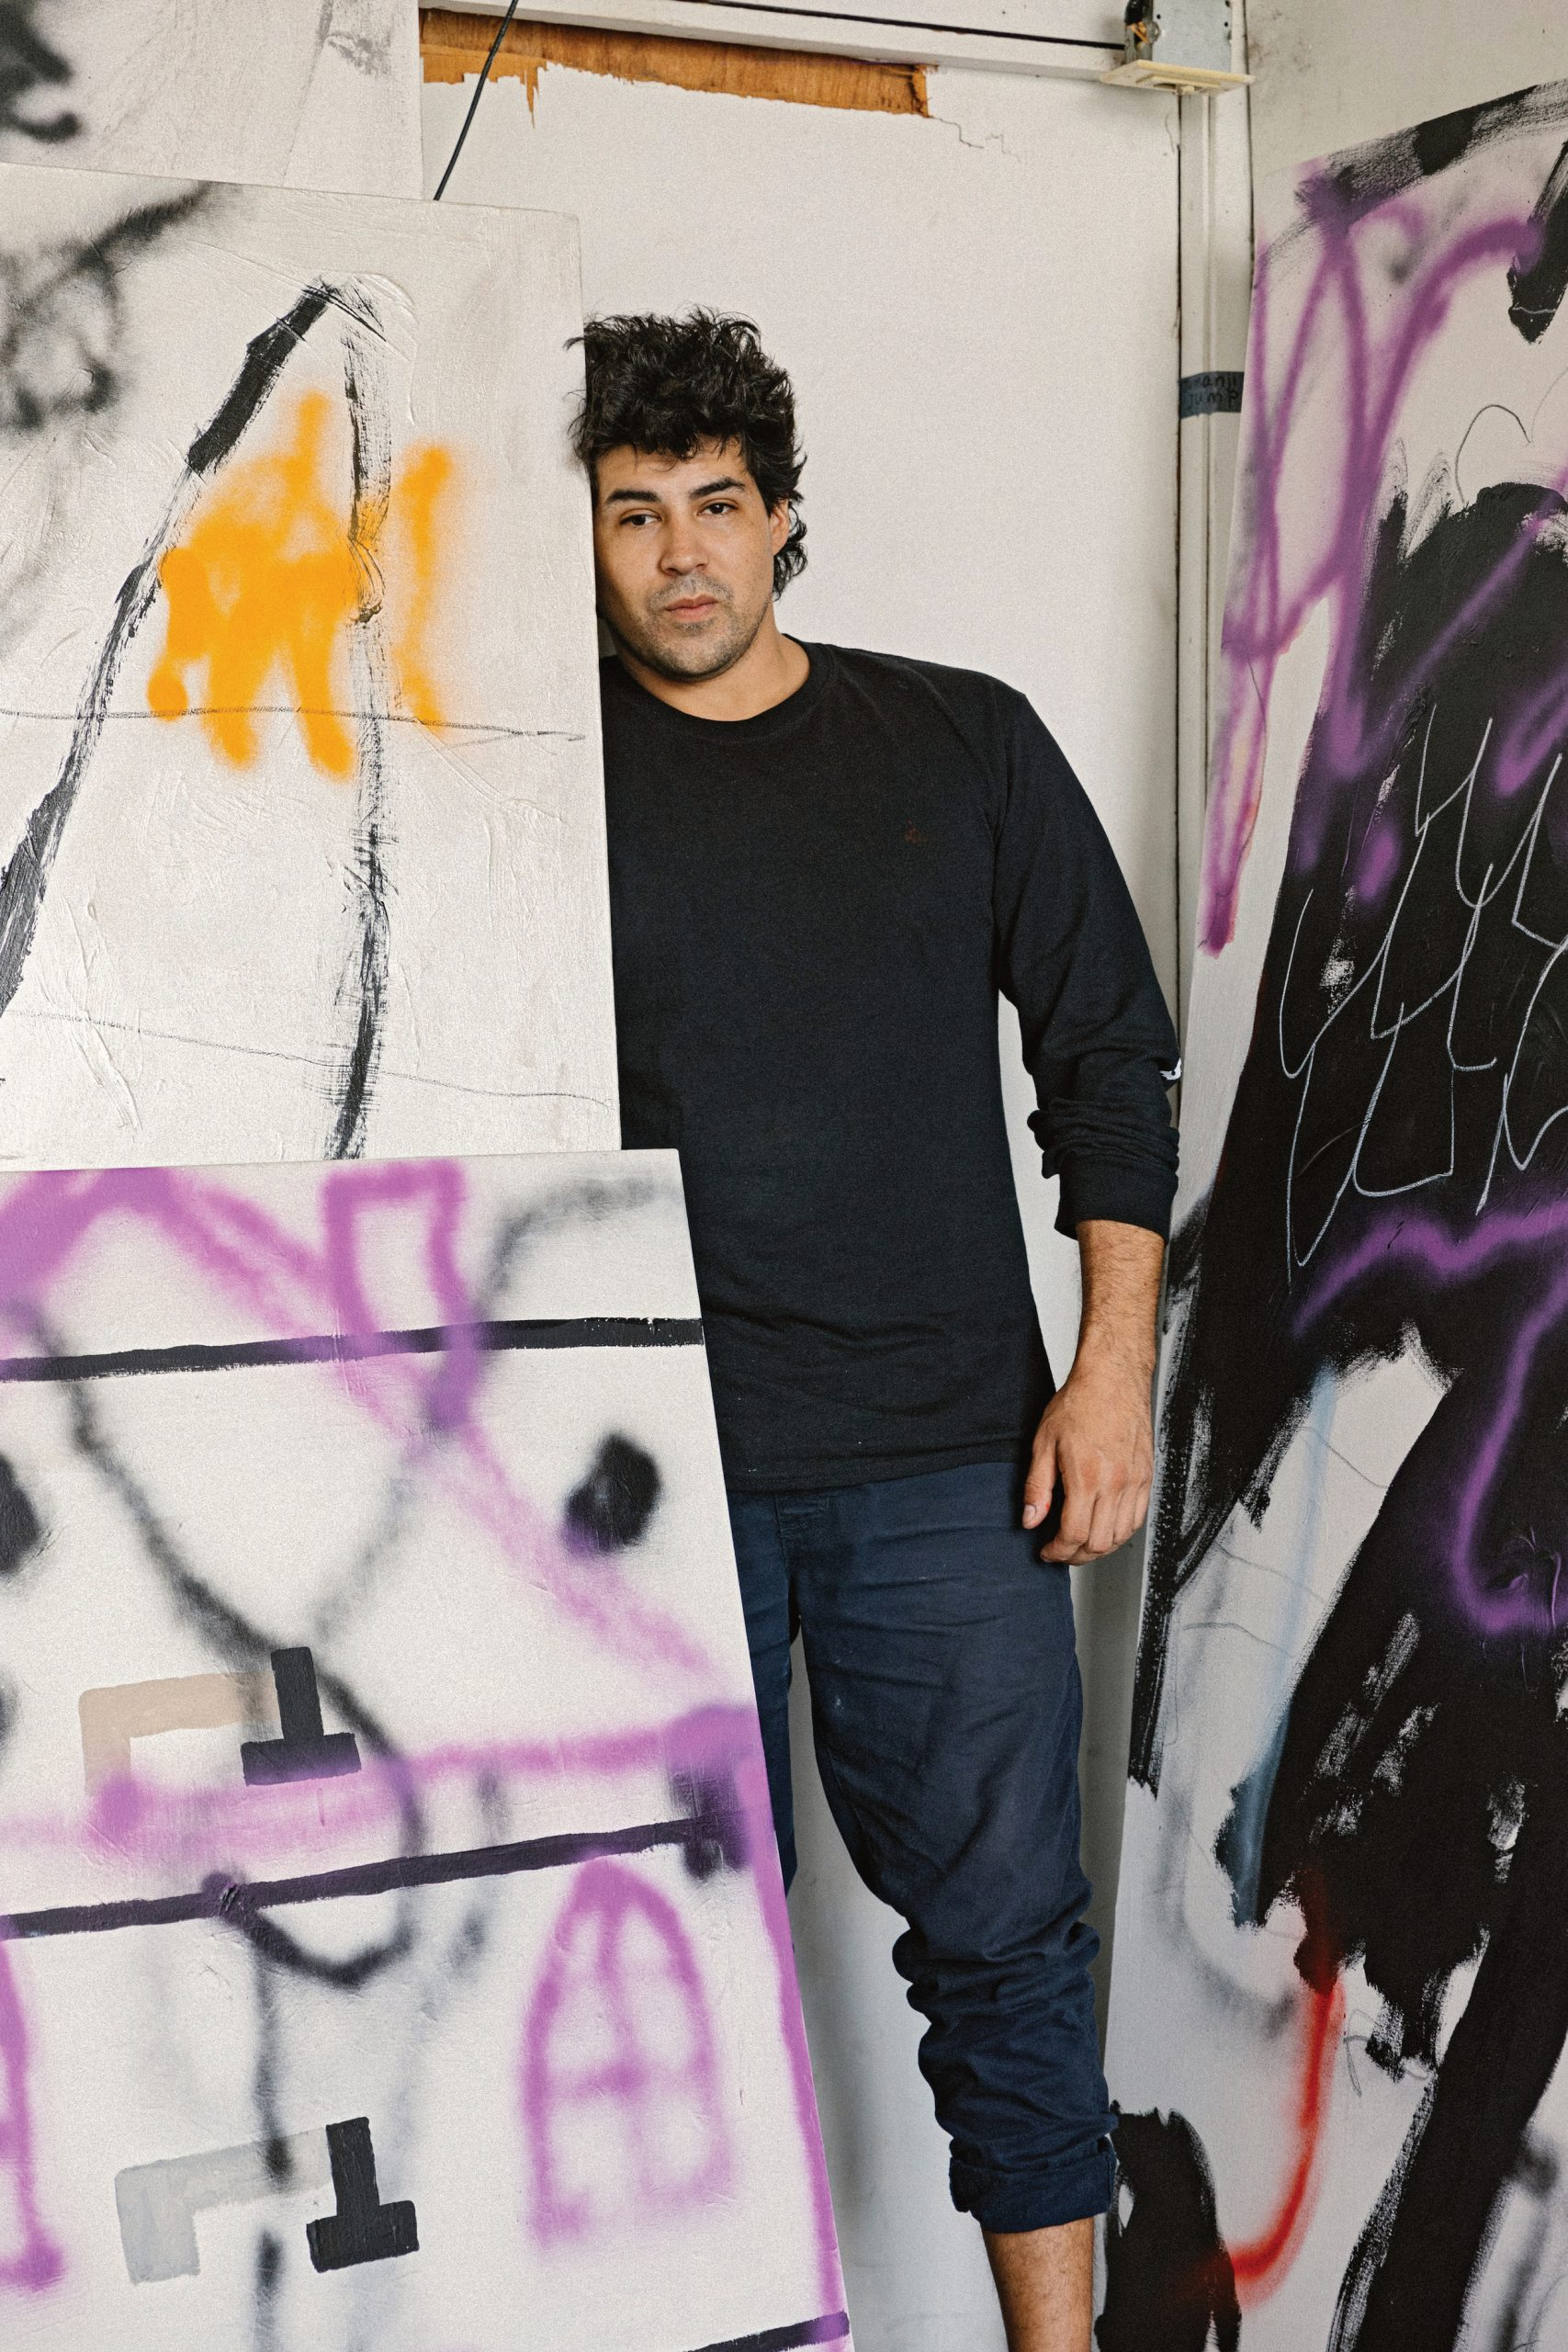 Painter Robert Nava Is Hated by Art-World Know-It-Alls. So Why Are Collectors Fighting for Anything From His Studio? | Artnet News